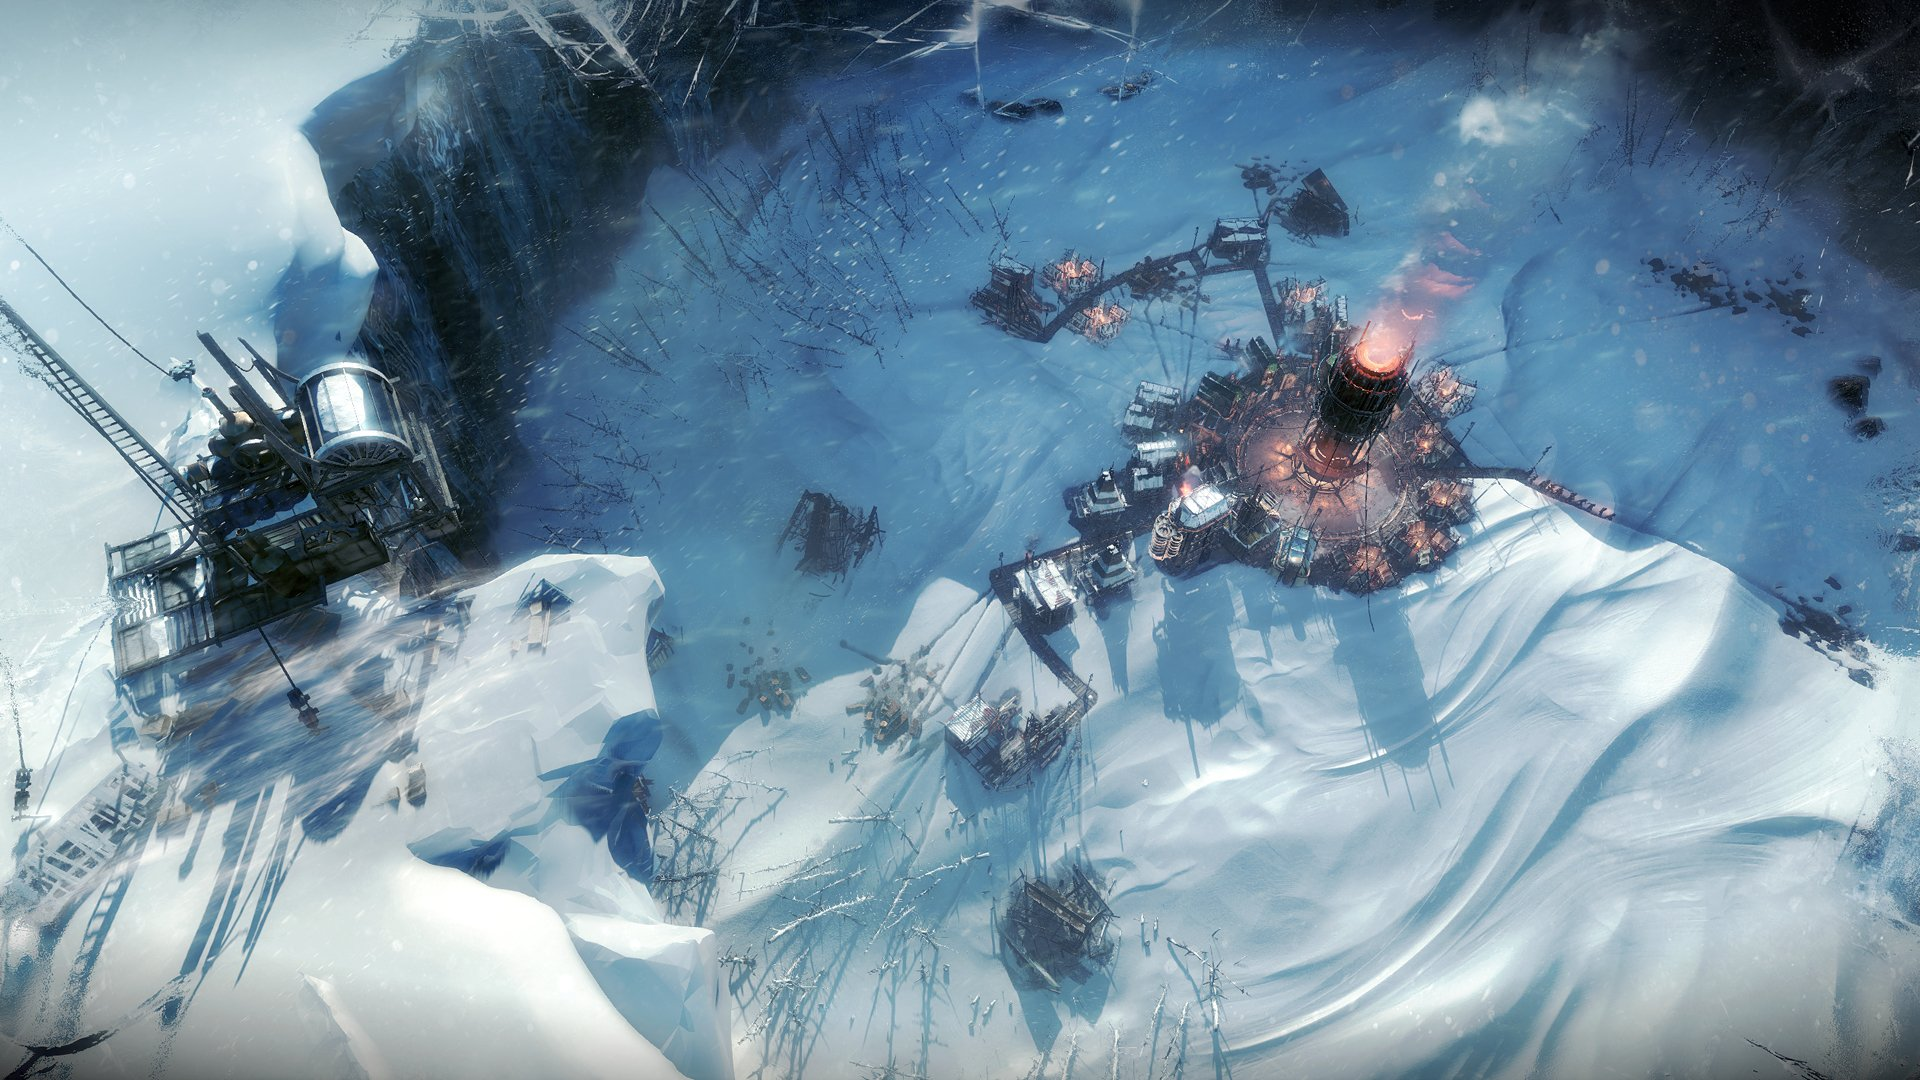 Free Frostpunk The Fall of Winterhome Expansion Lands This Week